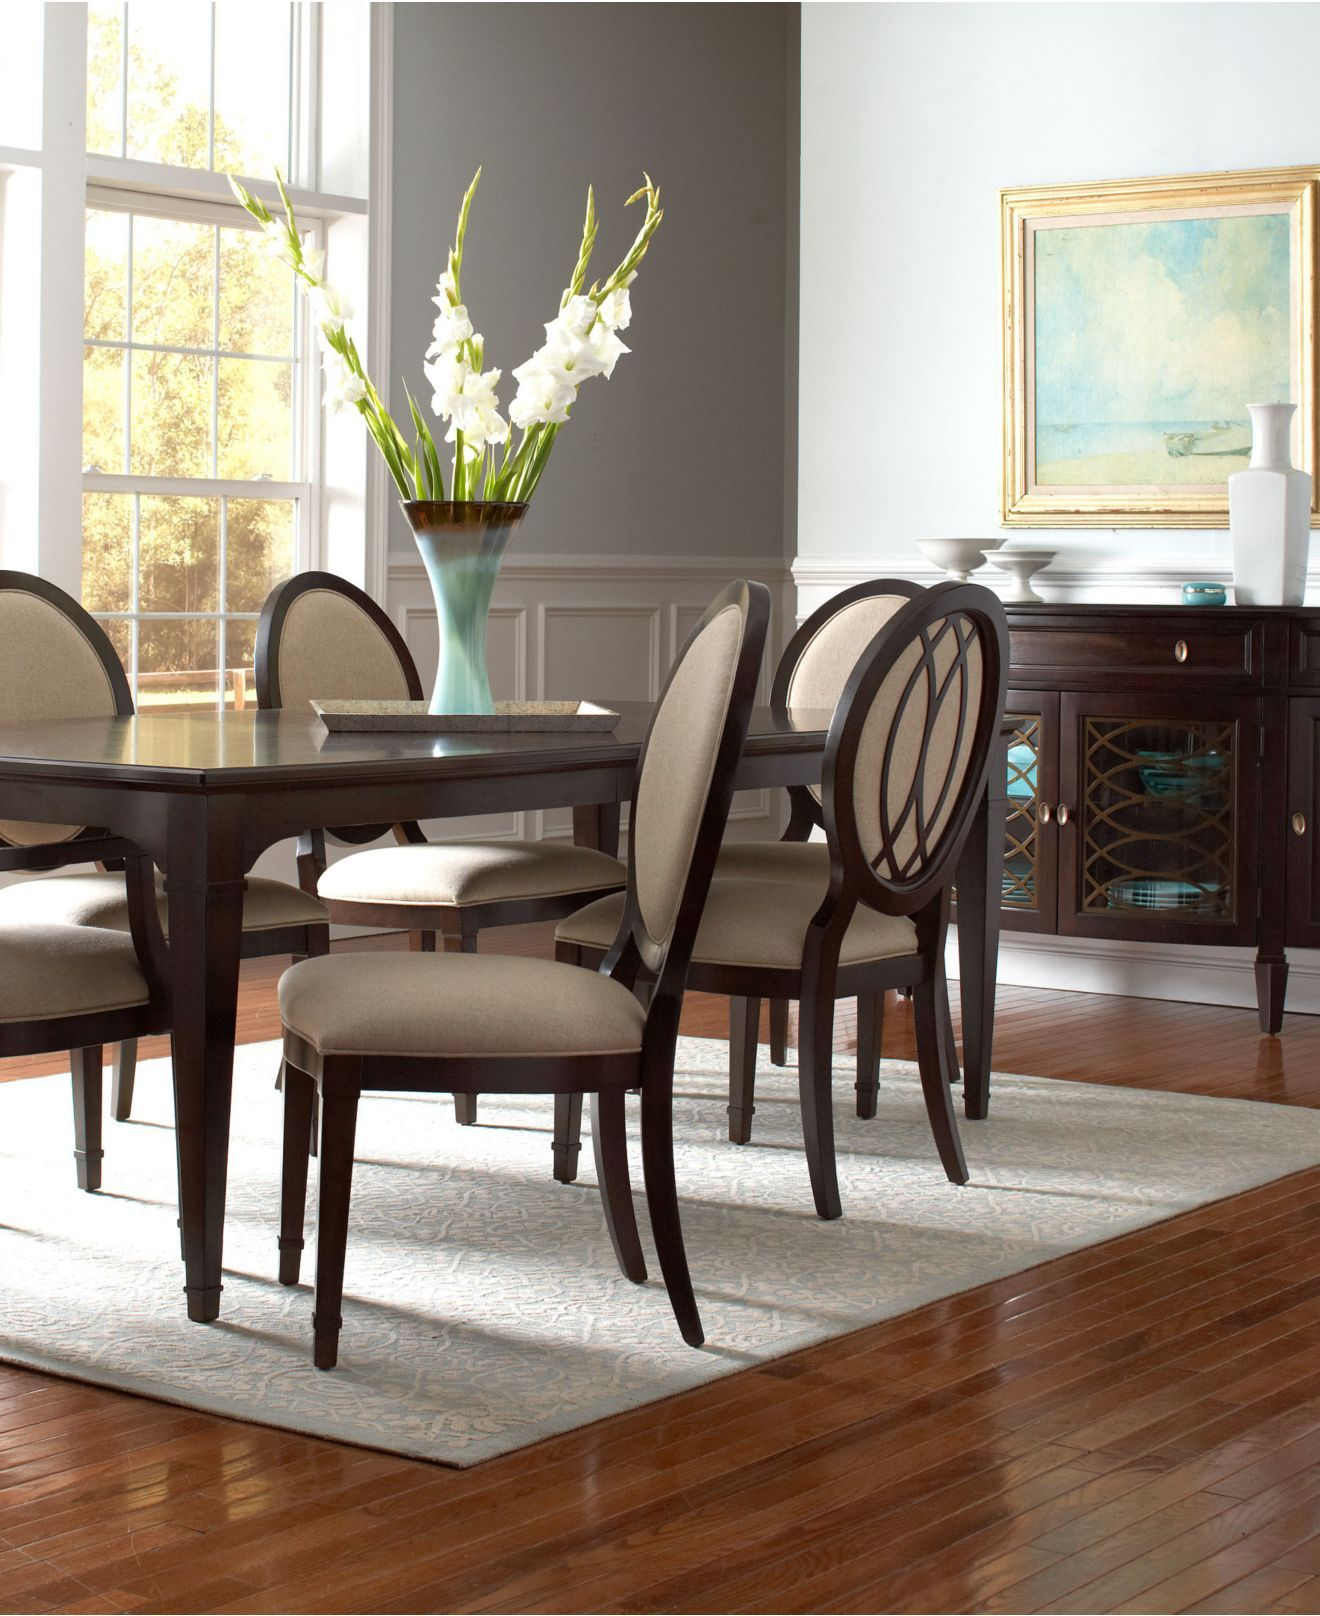 Blaze Dining Room Furniture Collection  Dining Room Furniture Endearing Dining Room Chairs Online Inspiration